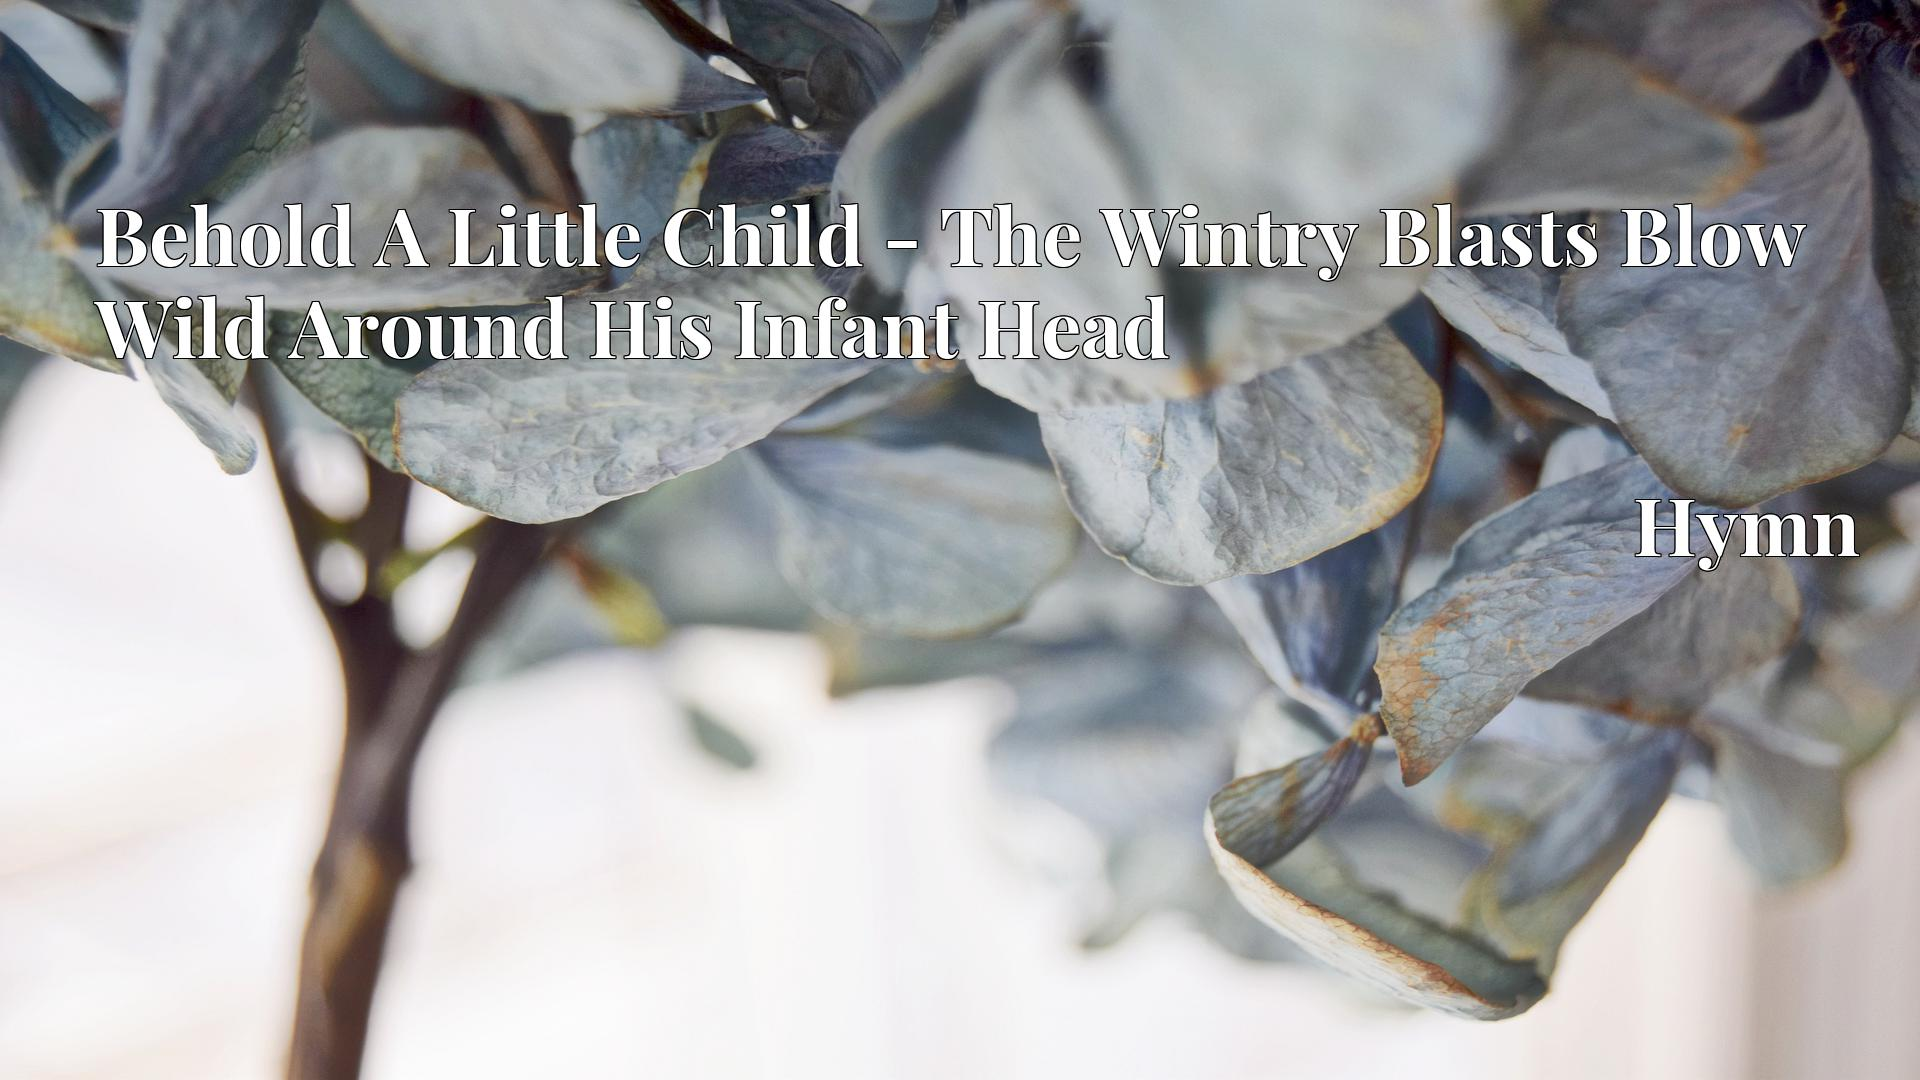 Behold A Little Child - The Wintry Blasts Blow Wild Around His Infant Head - Hymn